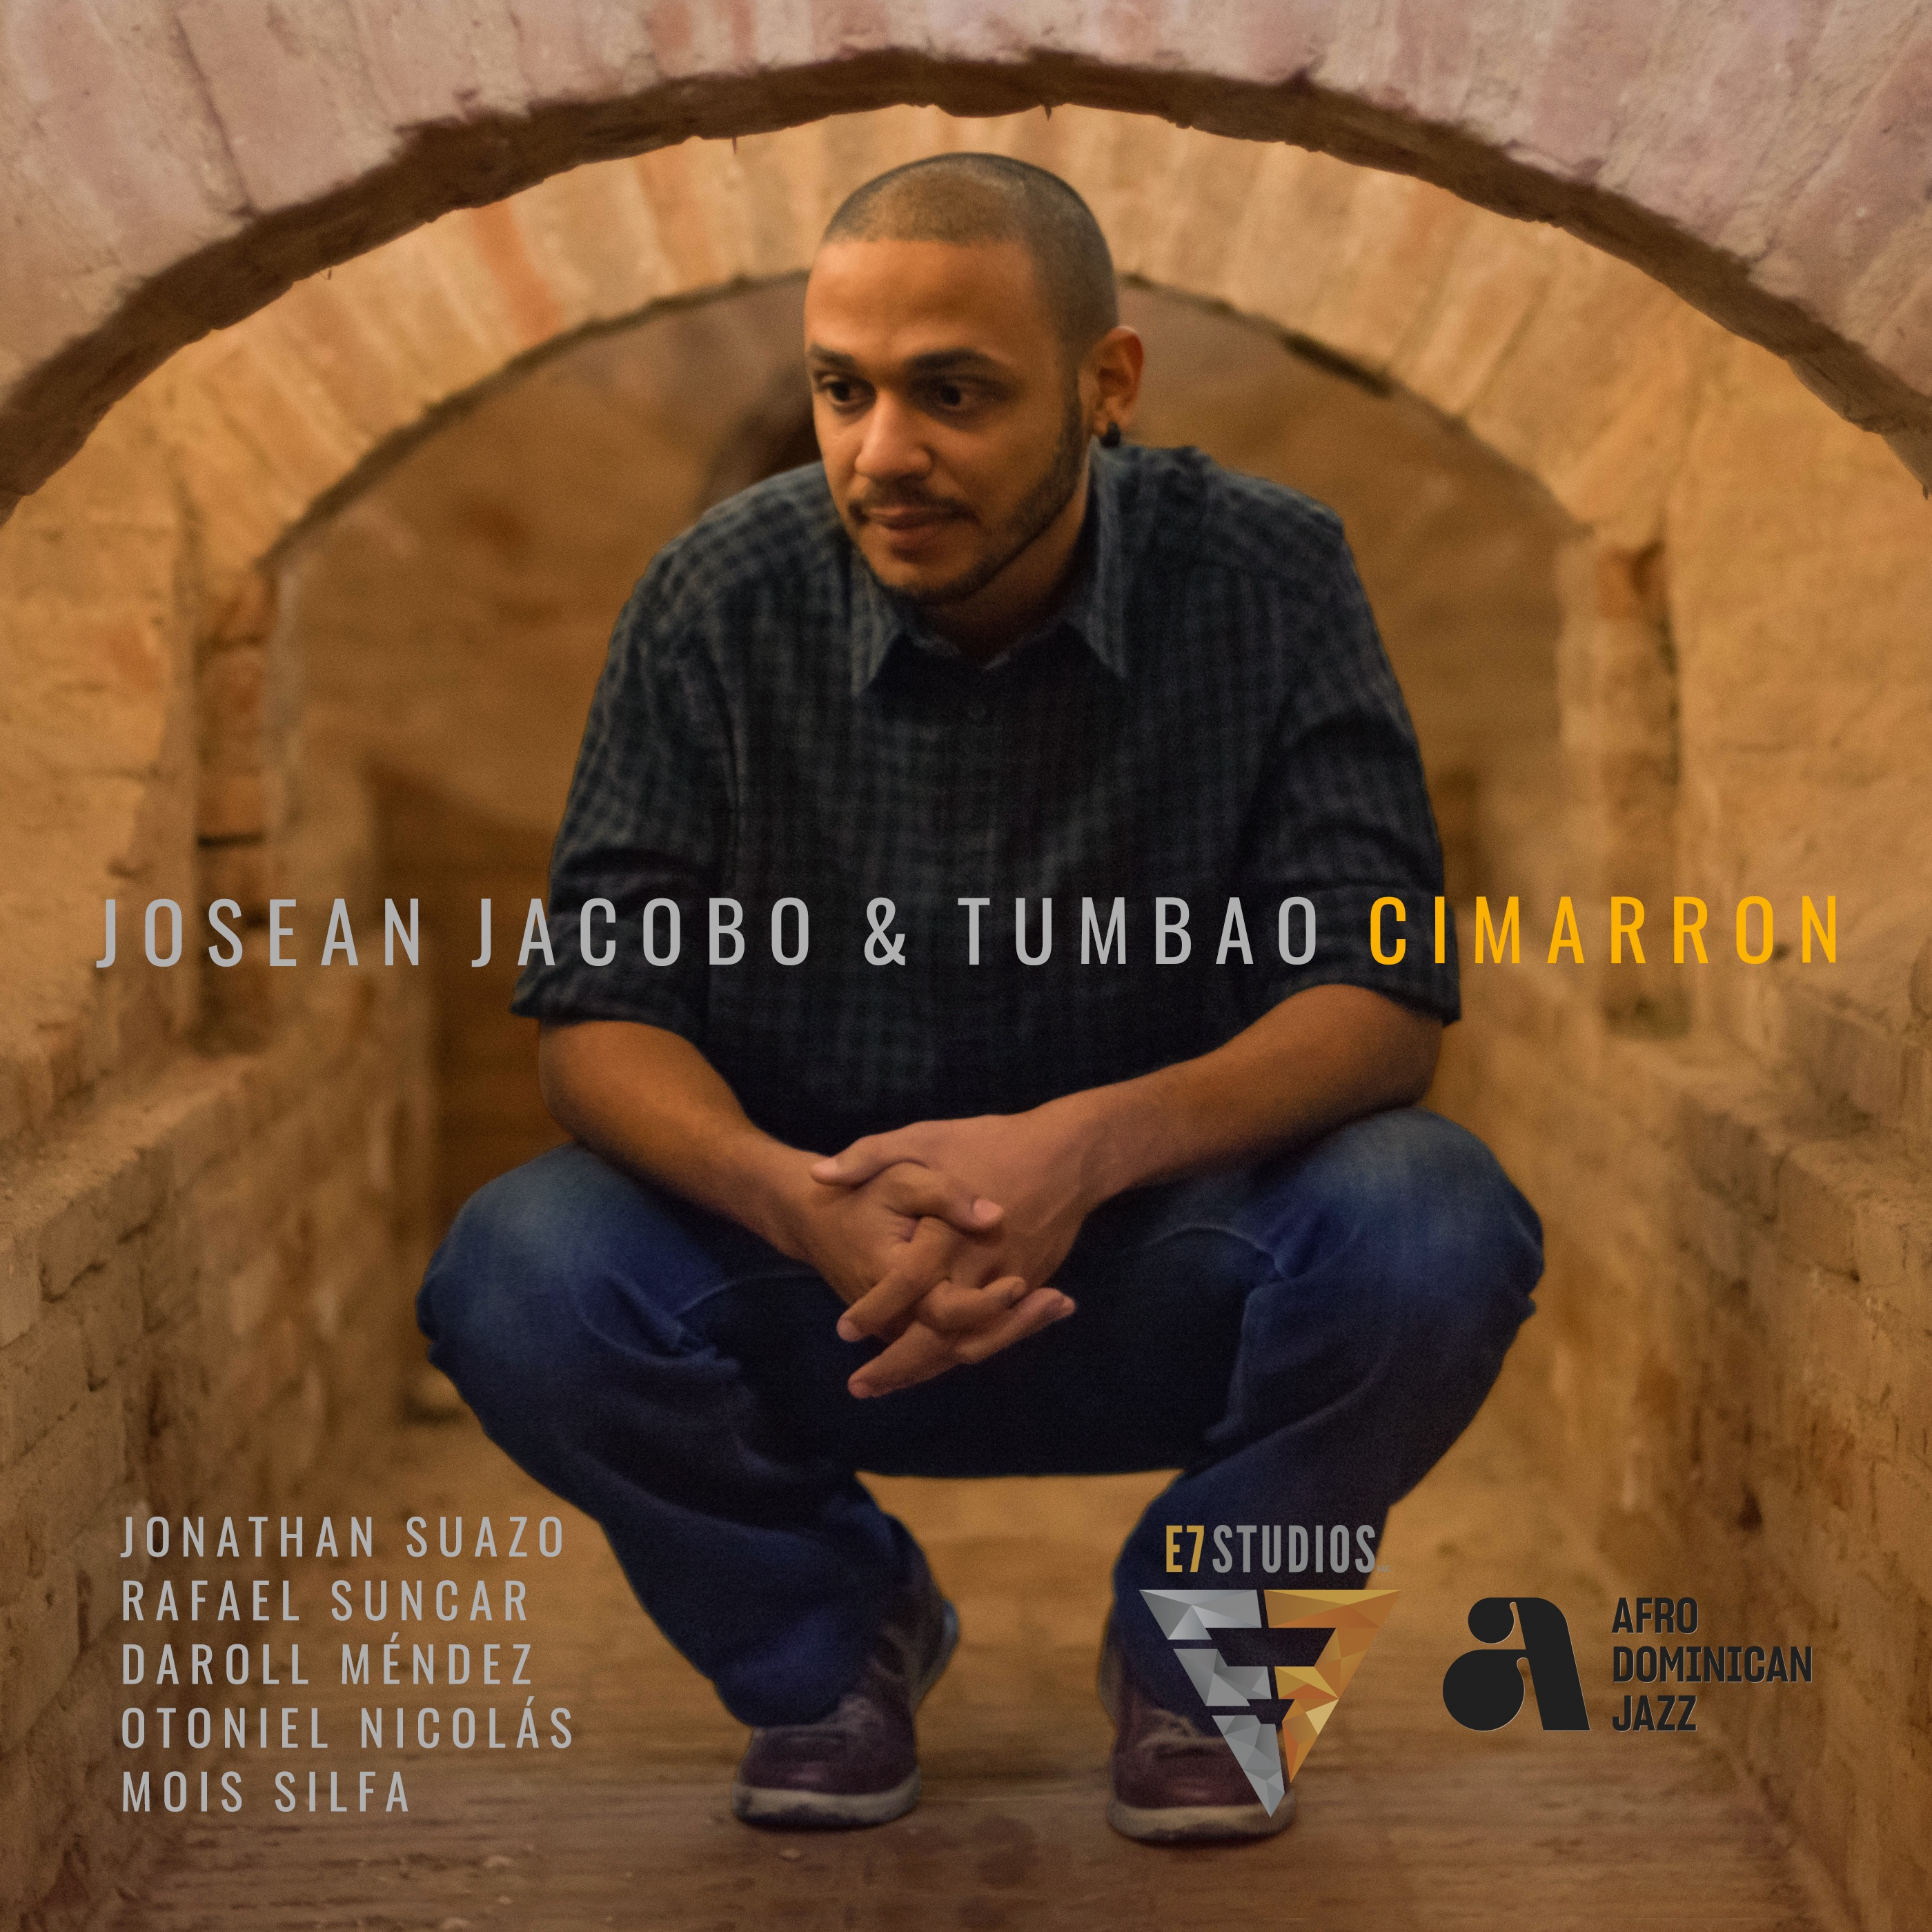 OUT TODAY: Josean Jacobo & Tumbao Integrate Afro-Descendant Folkloric Idioms on Cimarrón